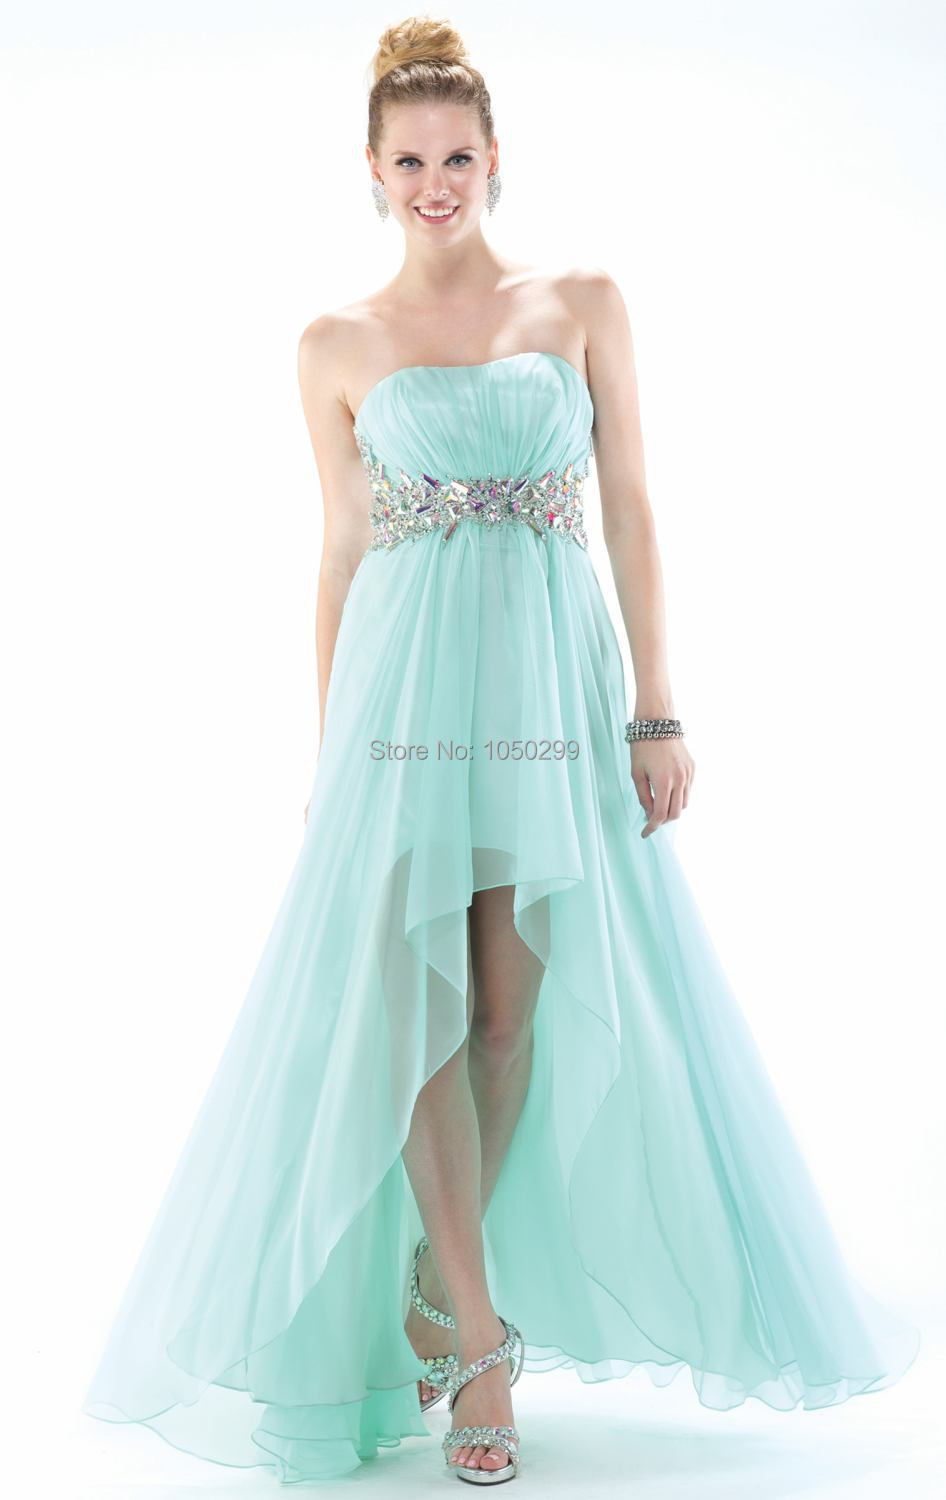 Funky Short In The Front Long In The Back Prom Dresses Frieze - All ...